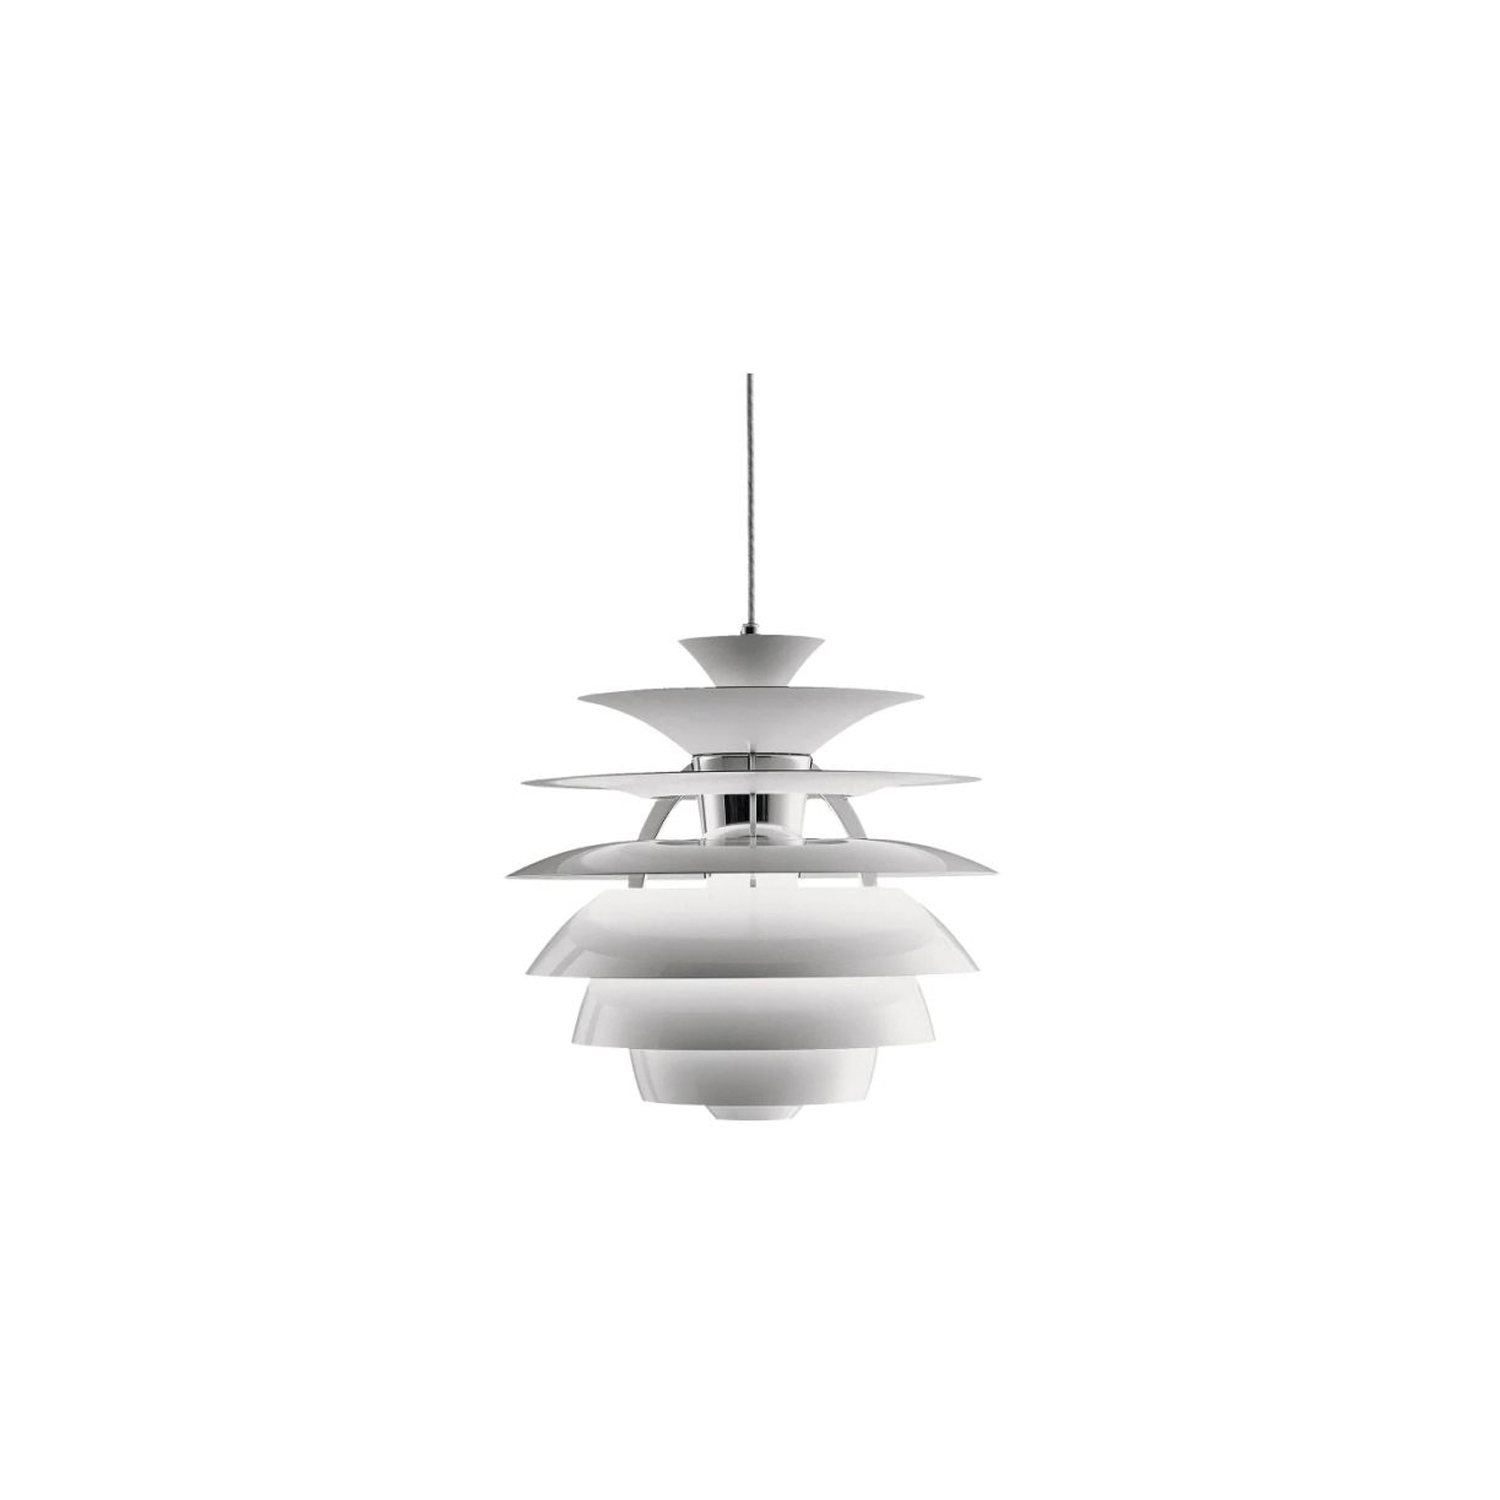 PH Snowball Pendant Lamp - The fixture emits comfortable glare-free diffuse light. Matt painted undersurfaces and glossy top surfaces result in an attractive reflection of the diffused light, creating uniform light distribution around the fixture. When the light is switched on, the top portion is illuminated while the bottom part remains dark.  | Matter of Stuff